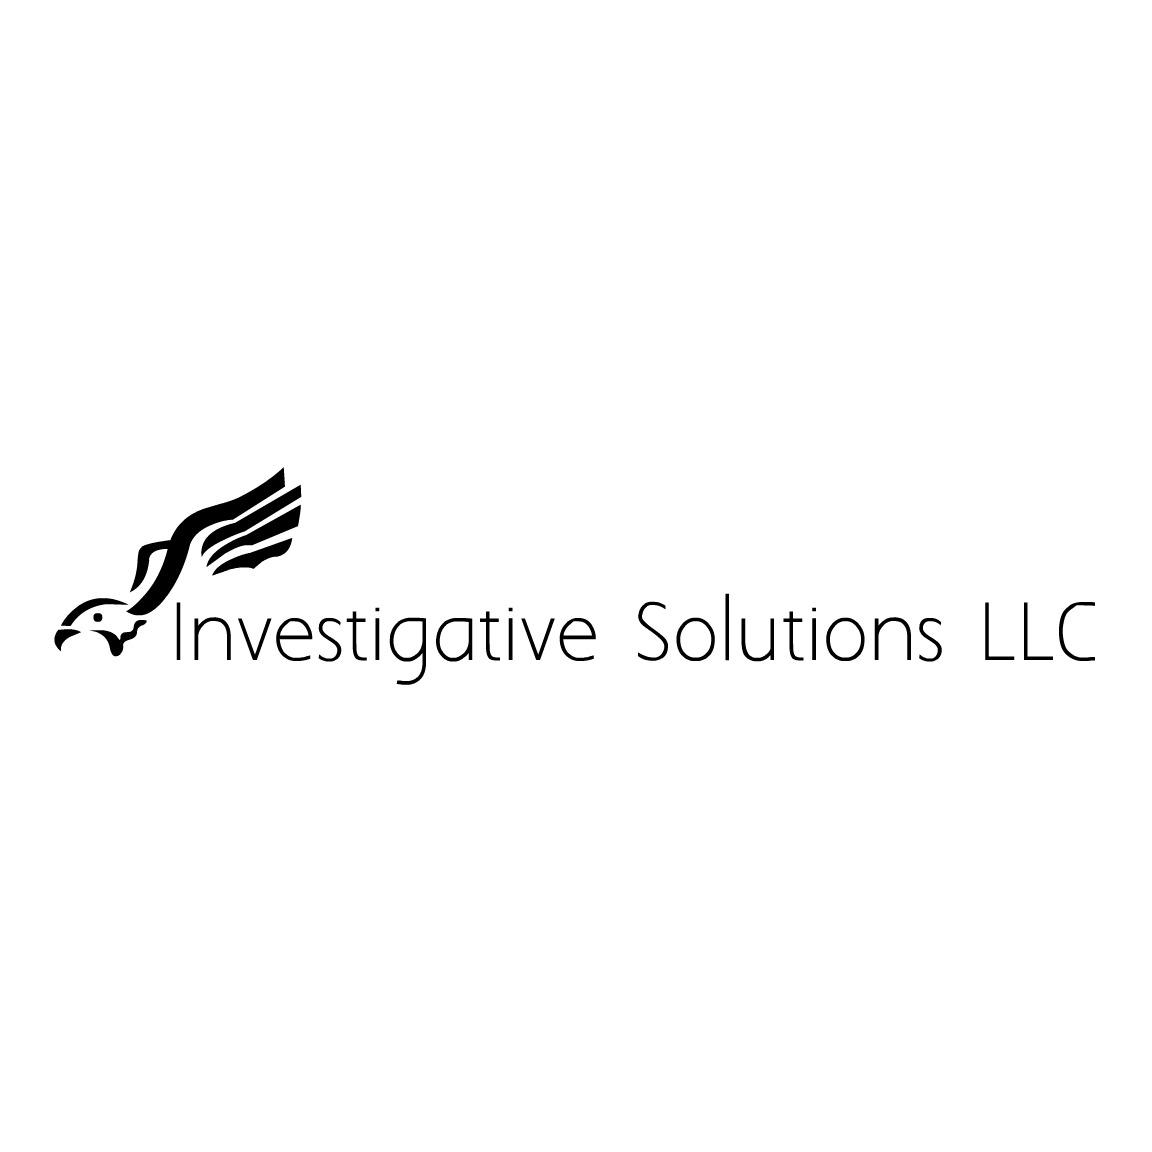 Investigative Solutions